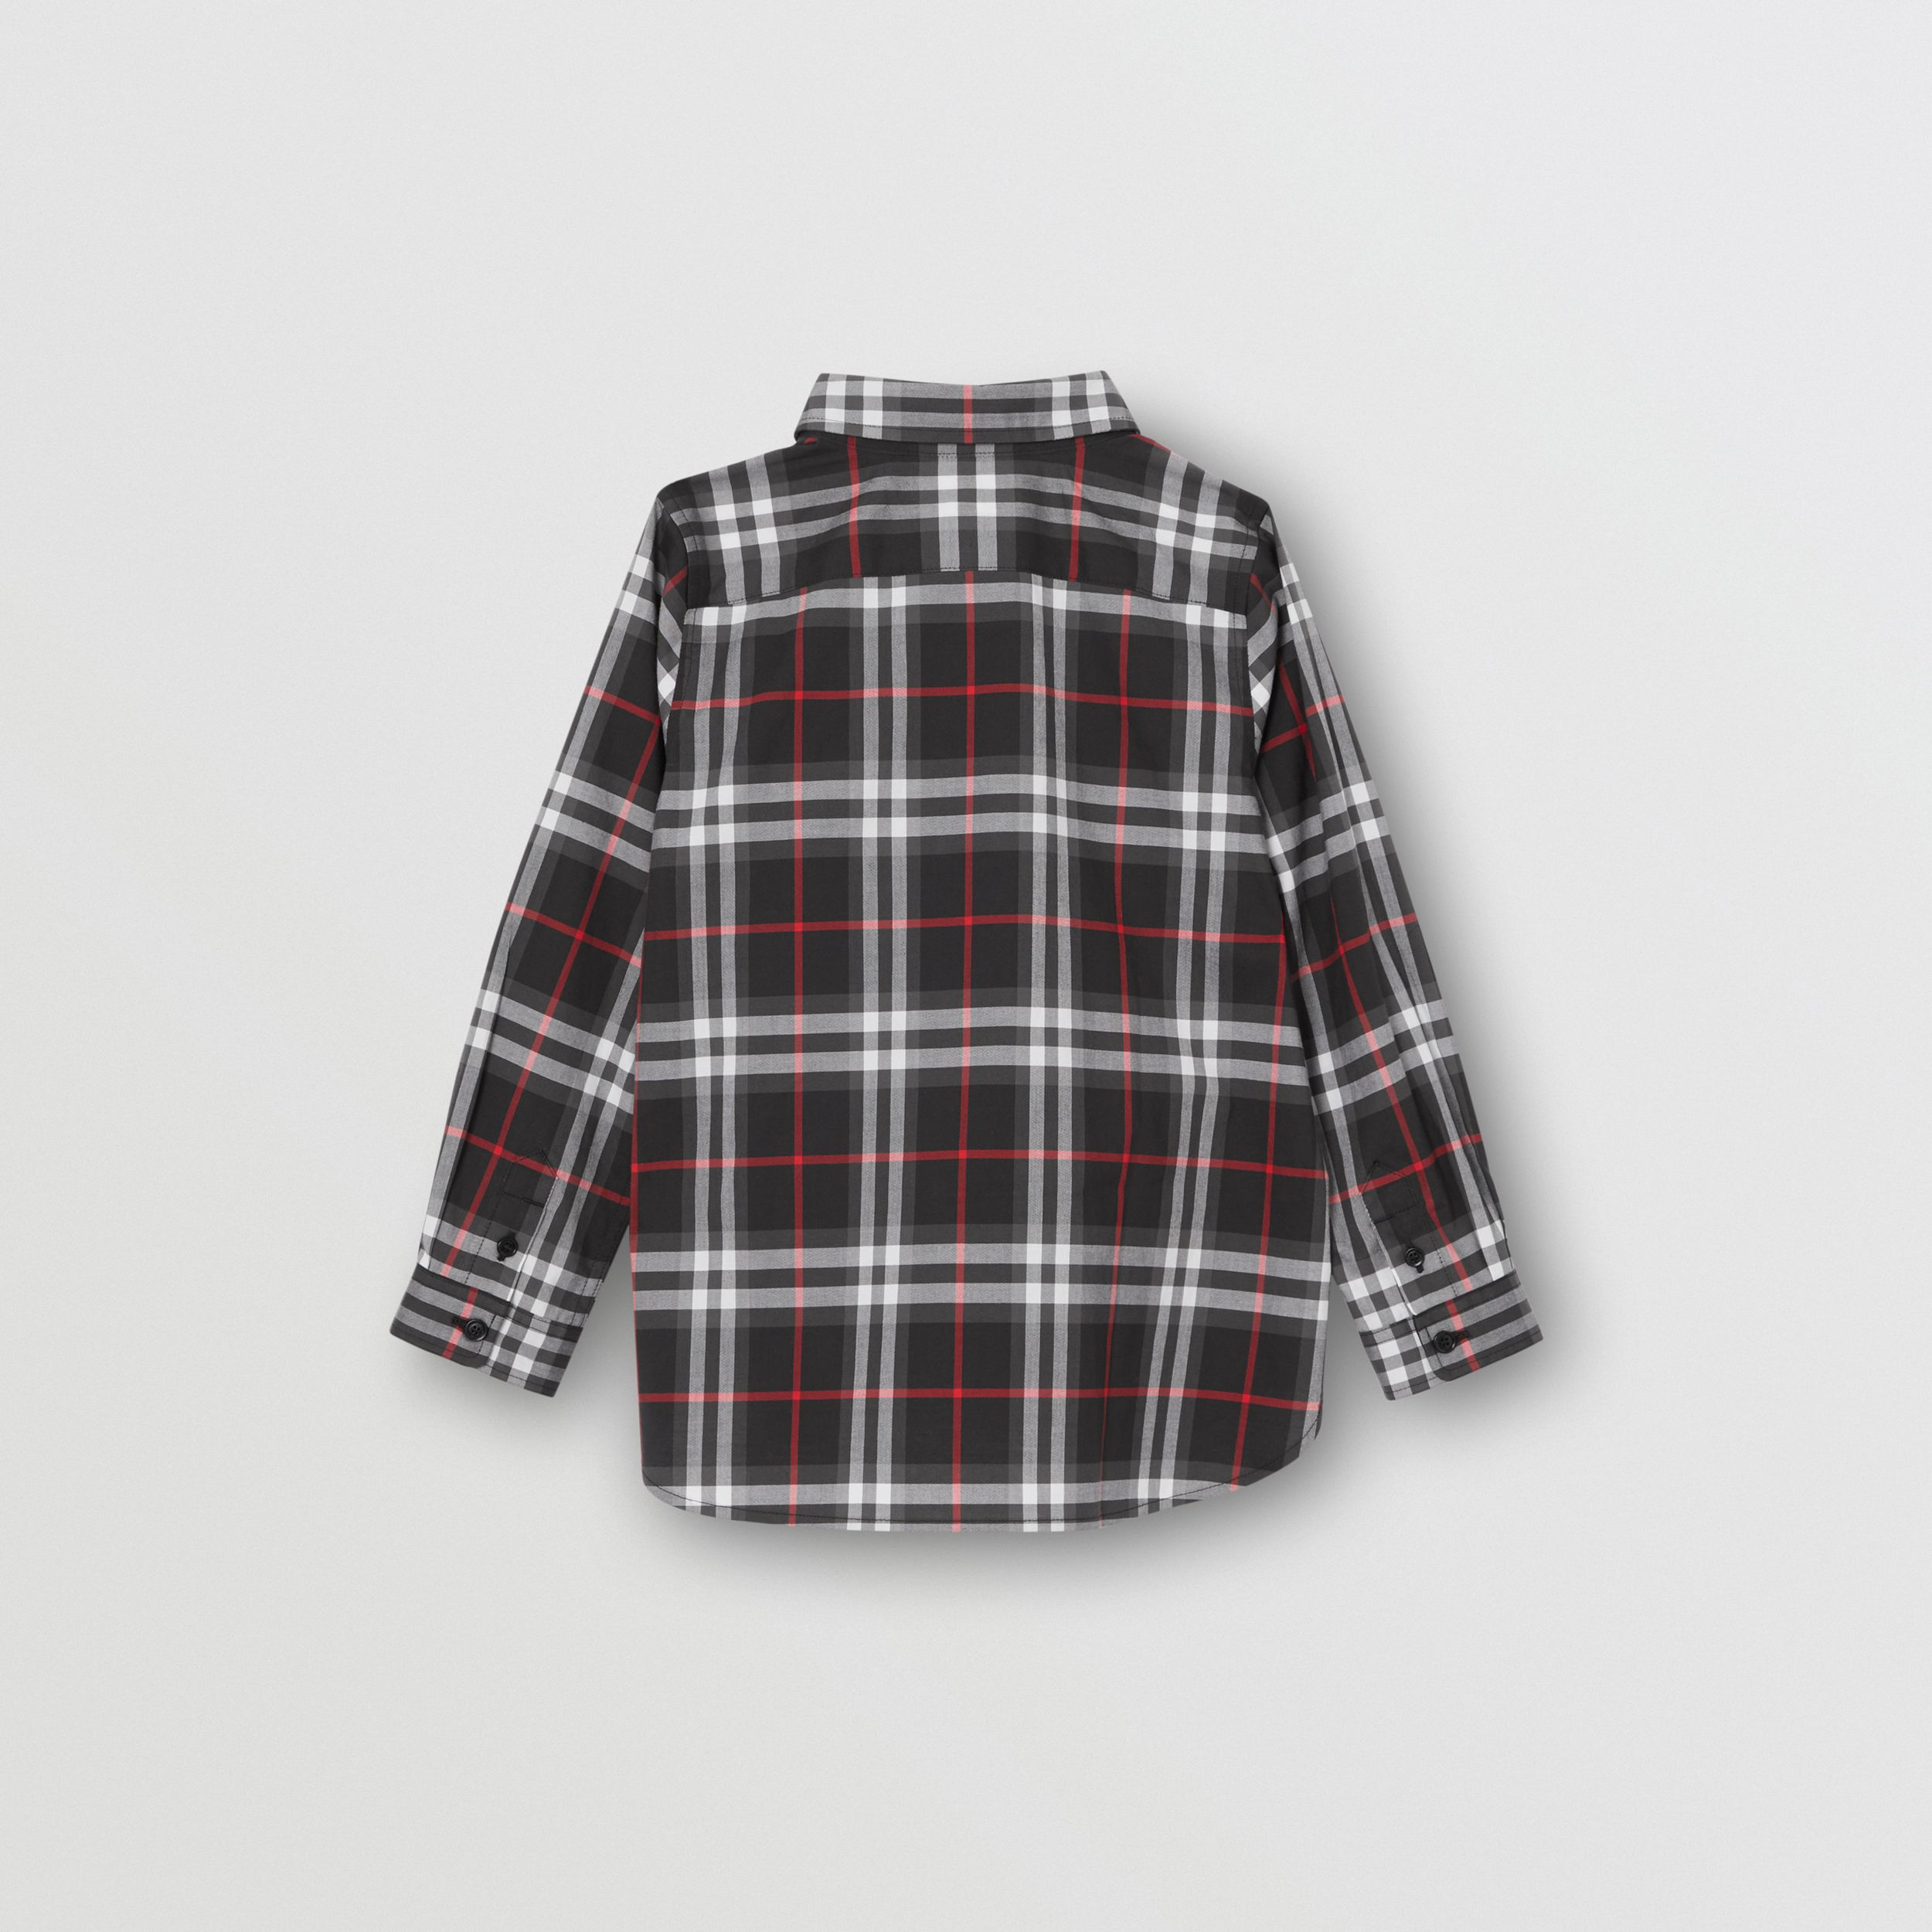 Vintage Check Cotton Shirt in Black | Burberry - 4